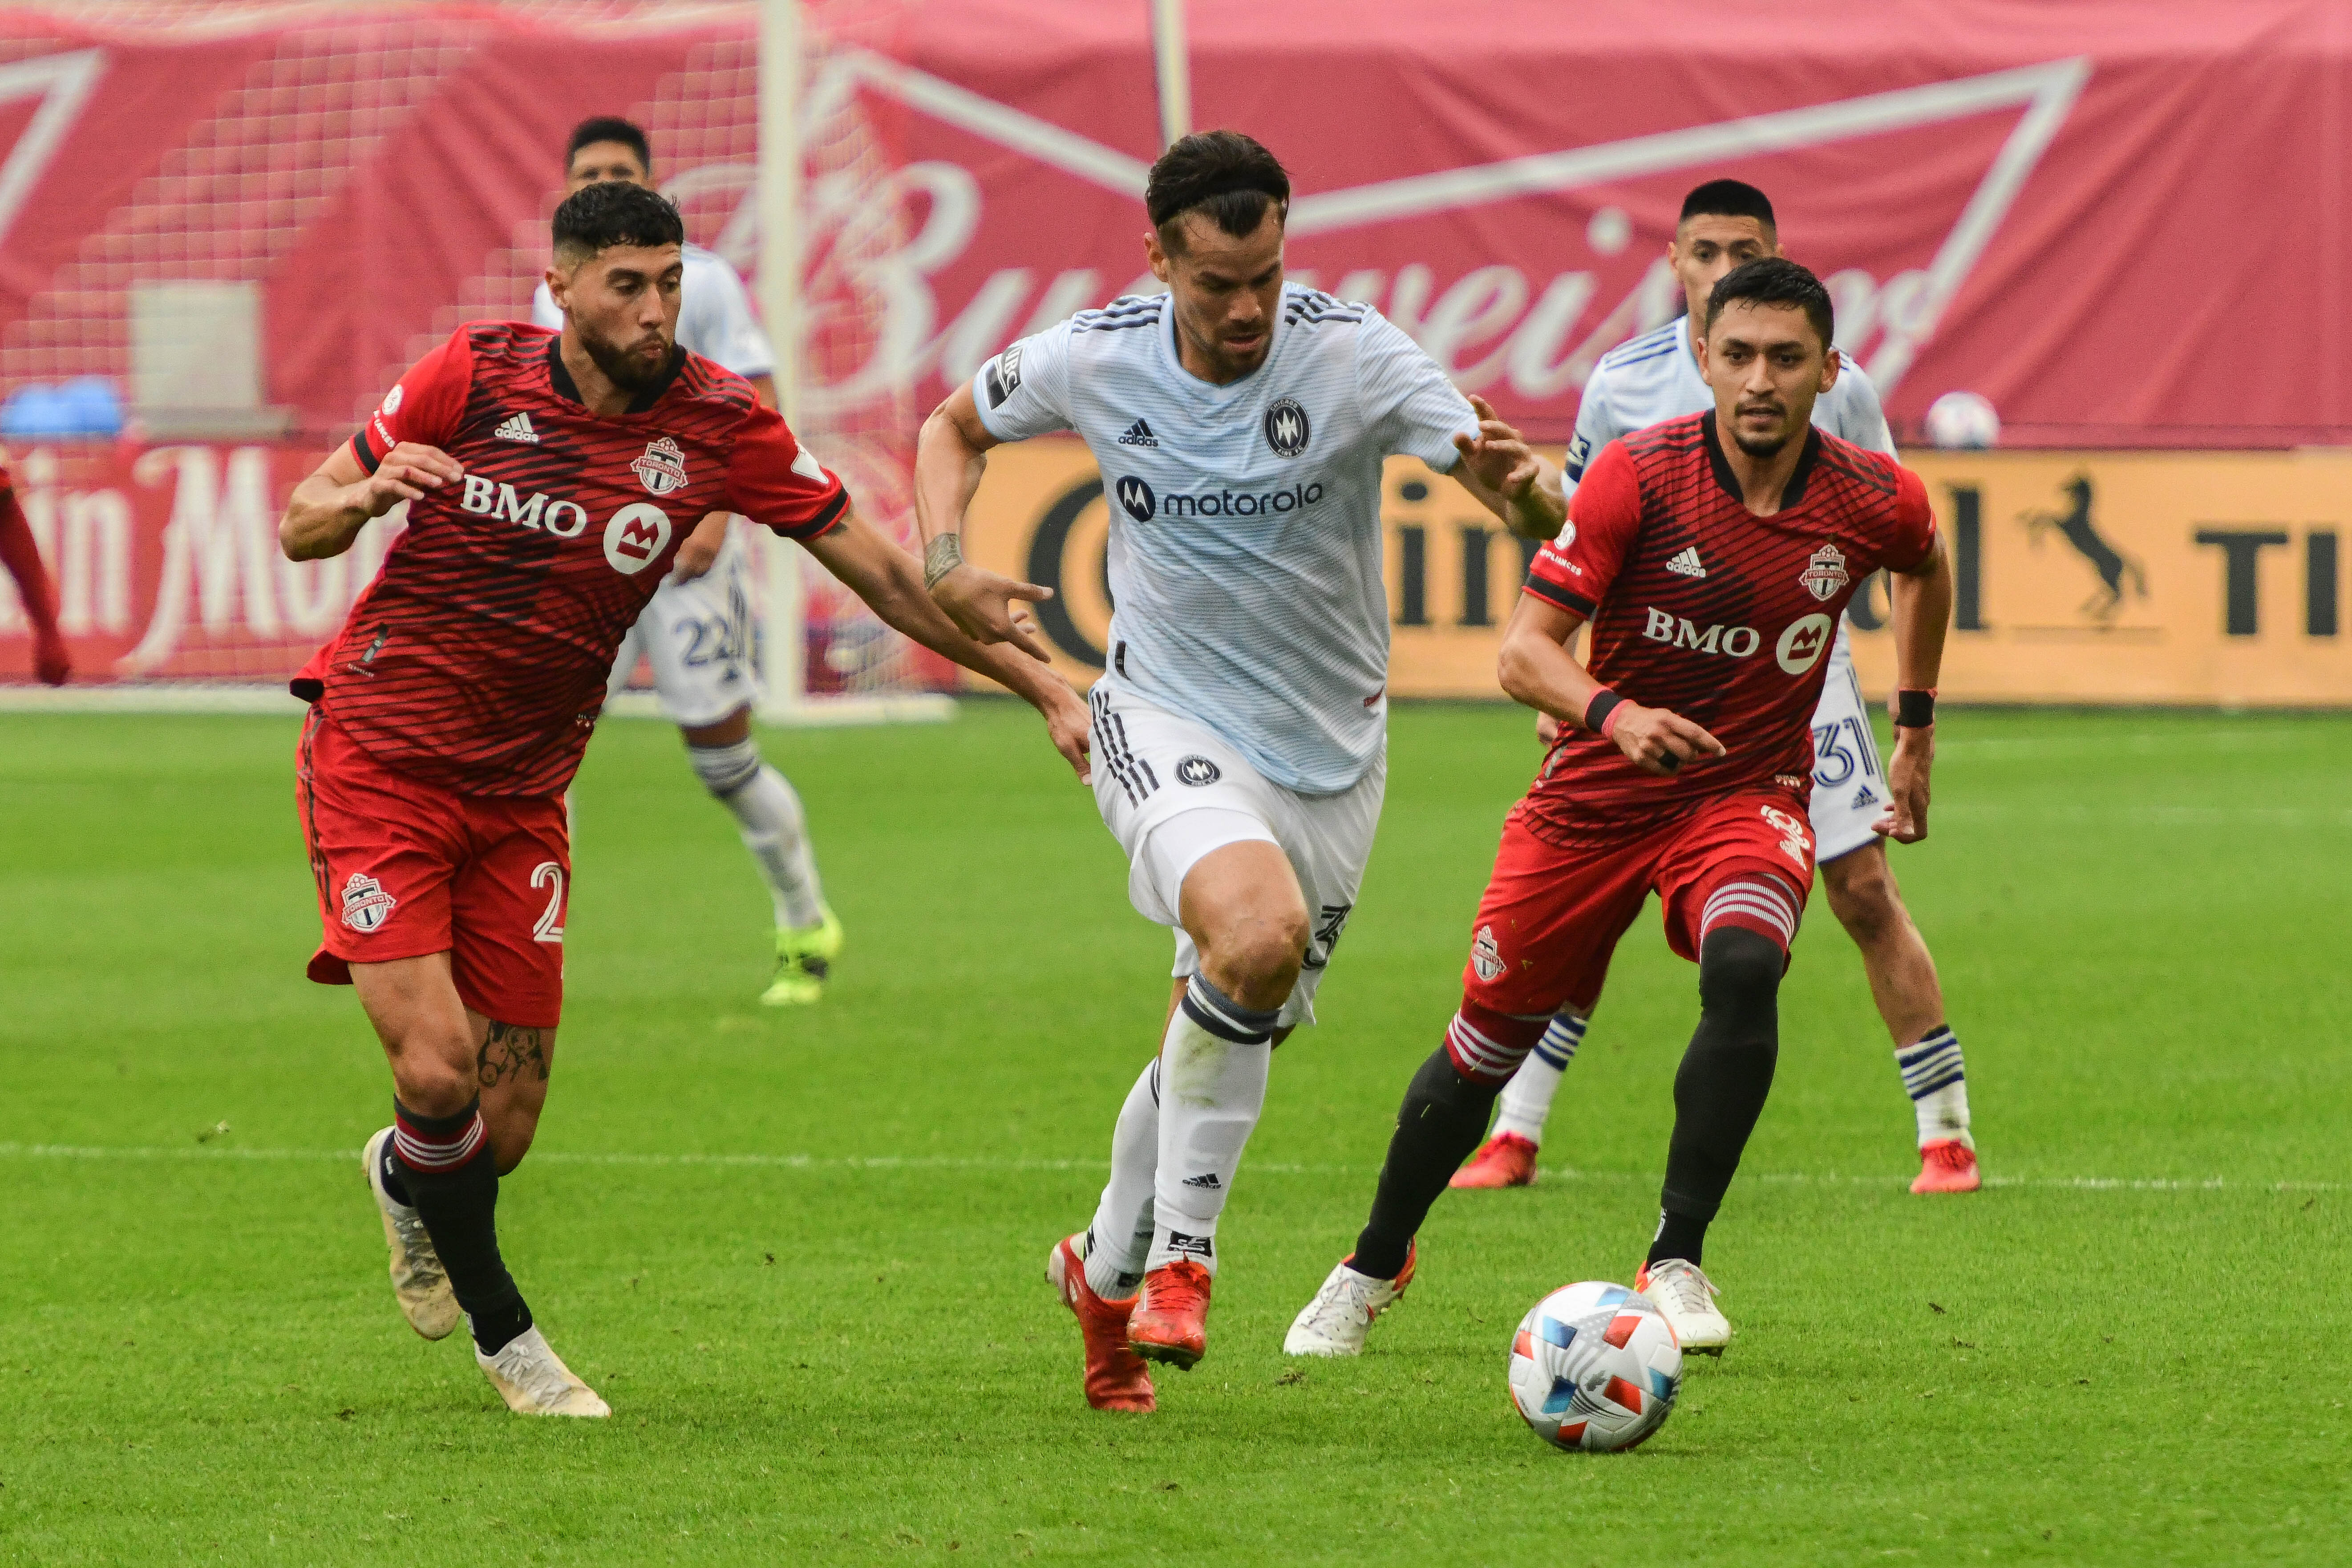 Gaston Gimenez and the Fire lost their first game after Raphael Wicky was dismissed, dropping Sunday's match to Toronto FC.